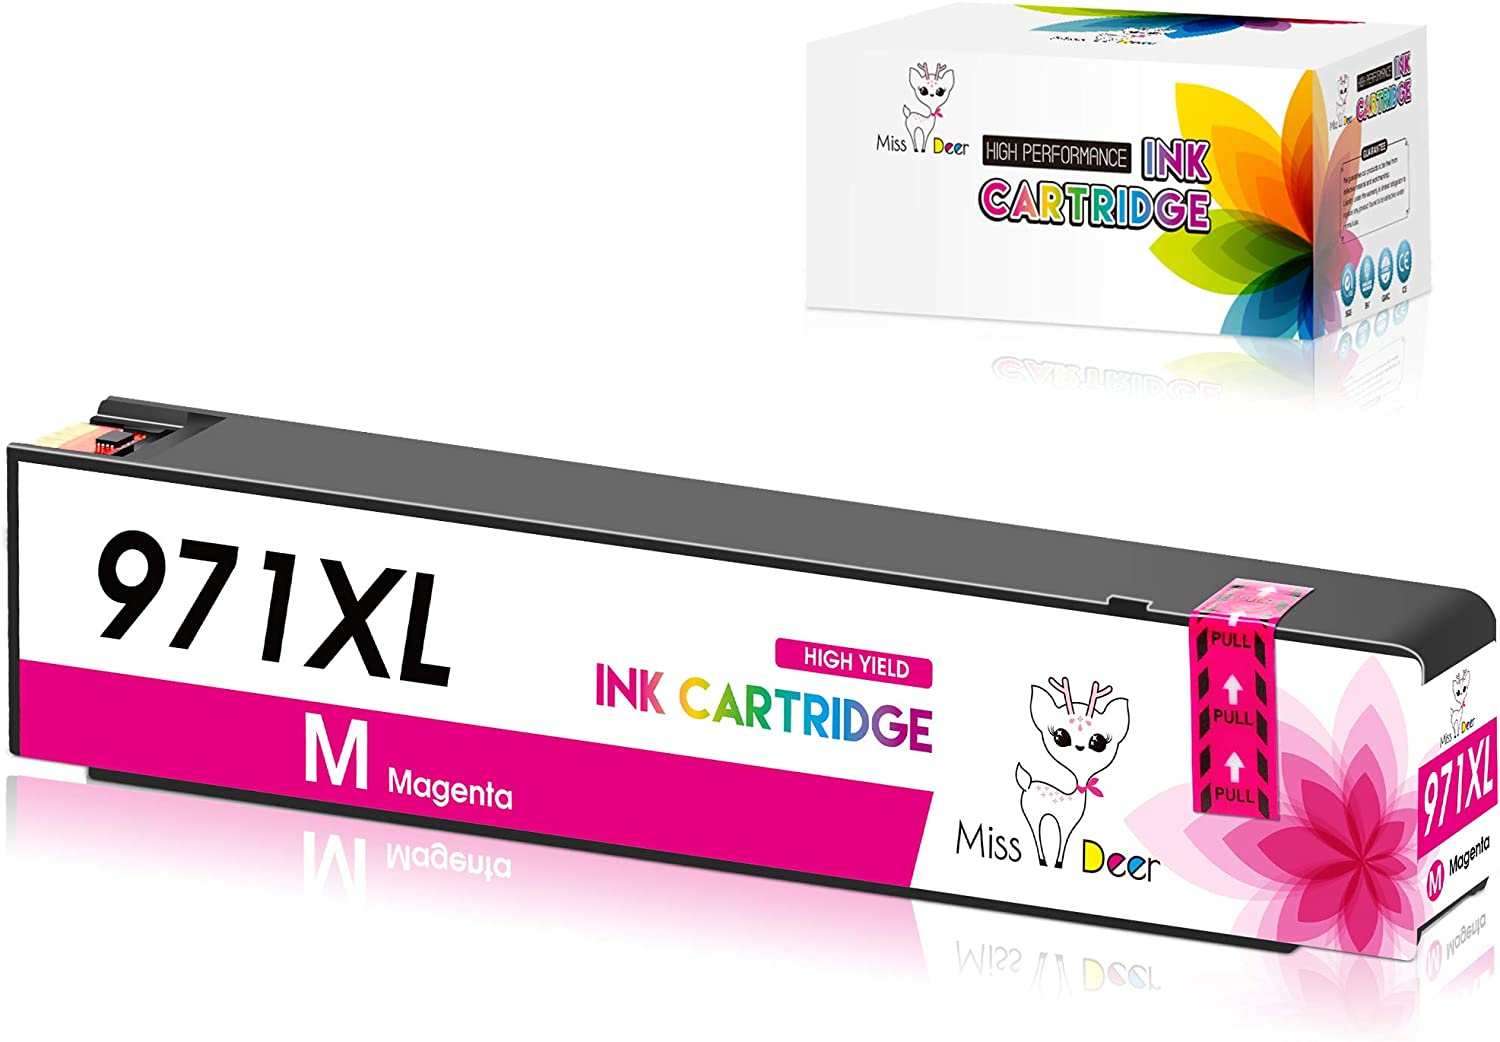 Miss Deer 970XL 971XL 970 971 Black Compatible Ink Cartridges Replacement for HP 970 971 XL,Work for HP Officejet Pro X576dw X451dn X451dw X476dw X476dn X551dw Printer (1 Magenta)